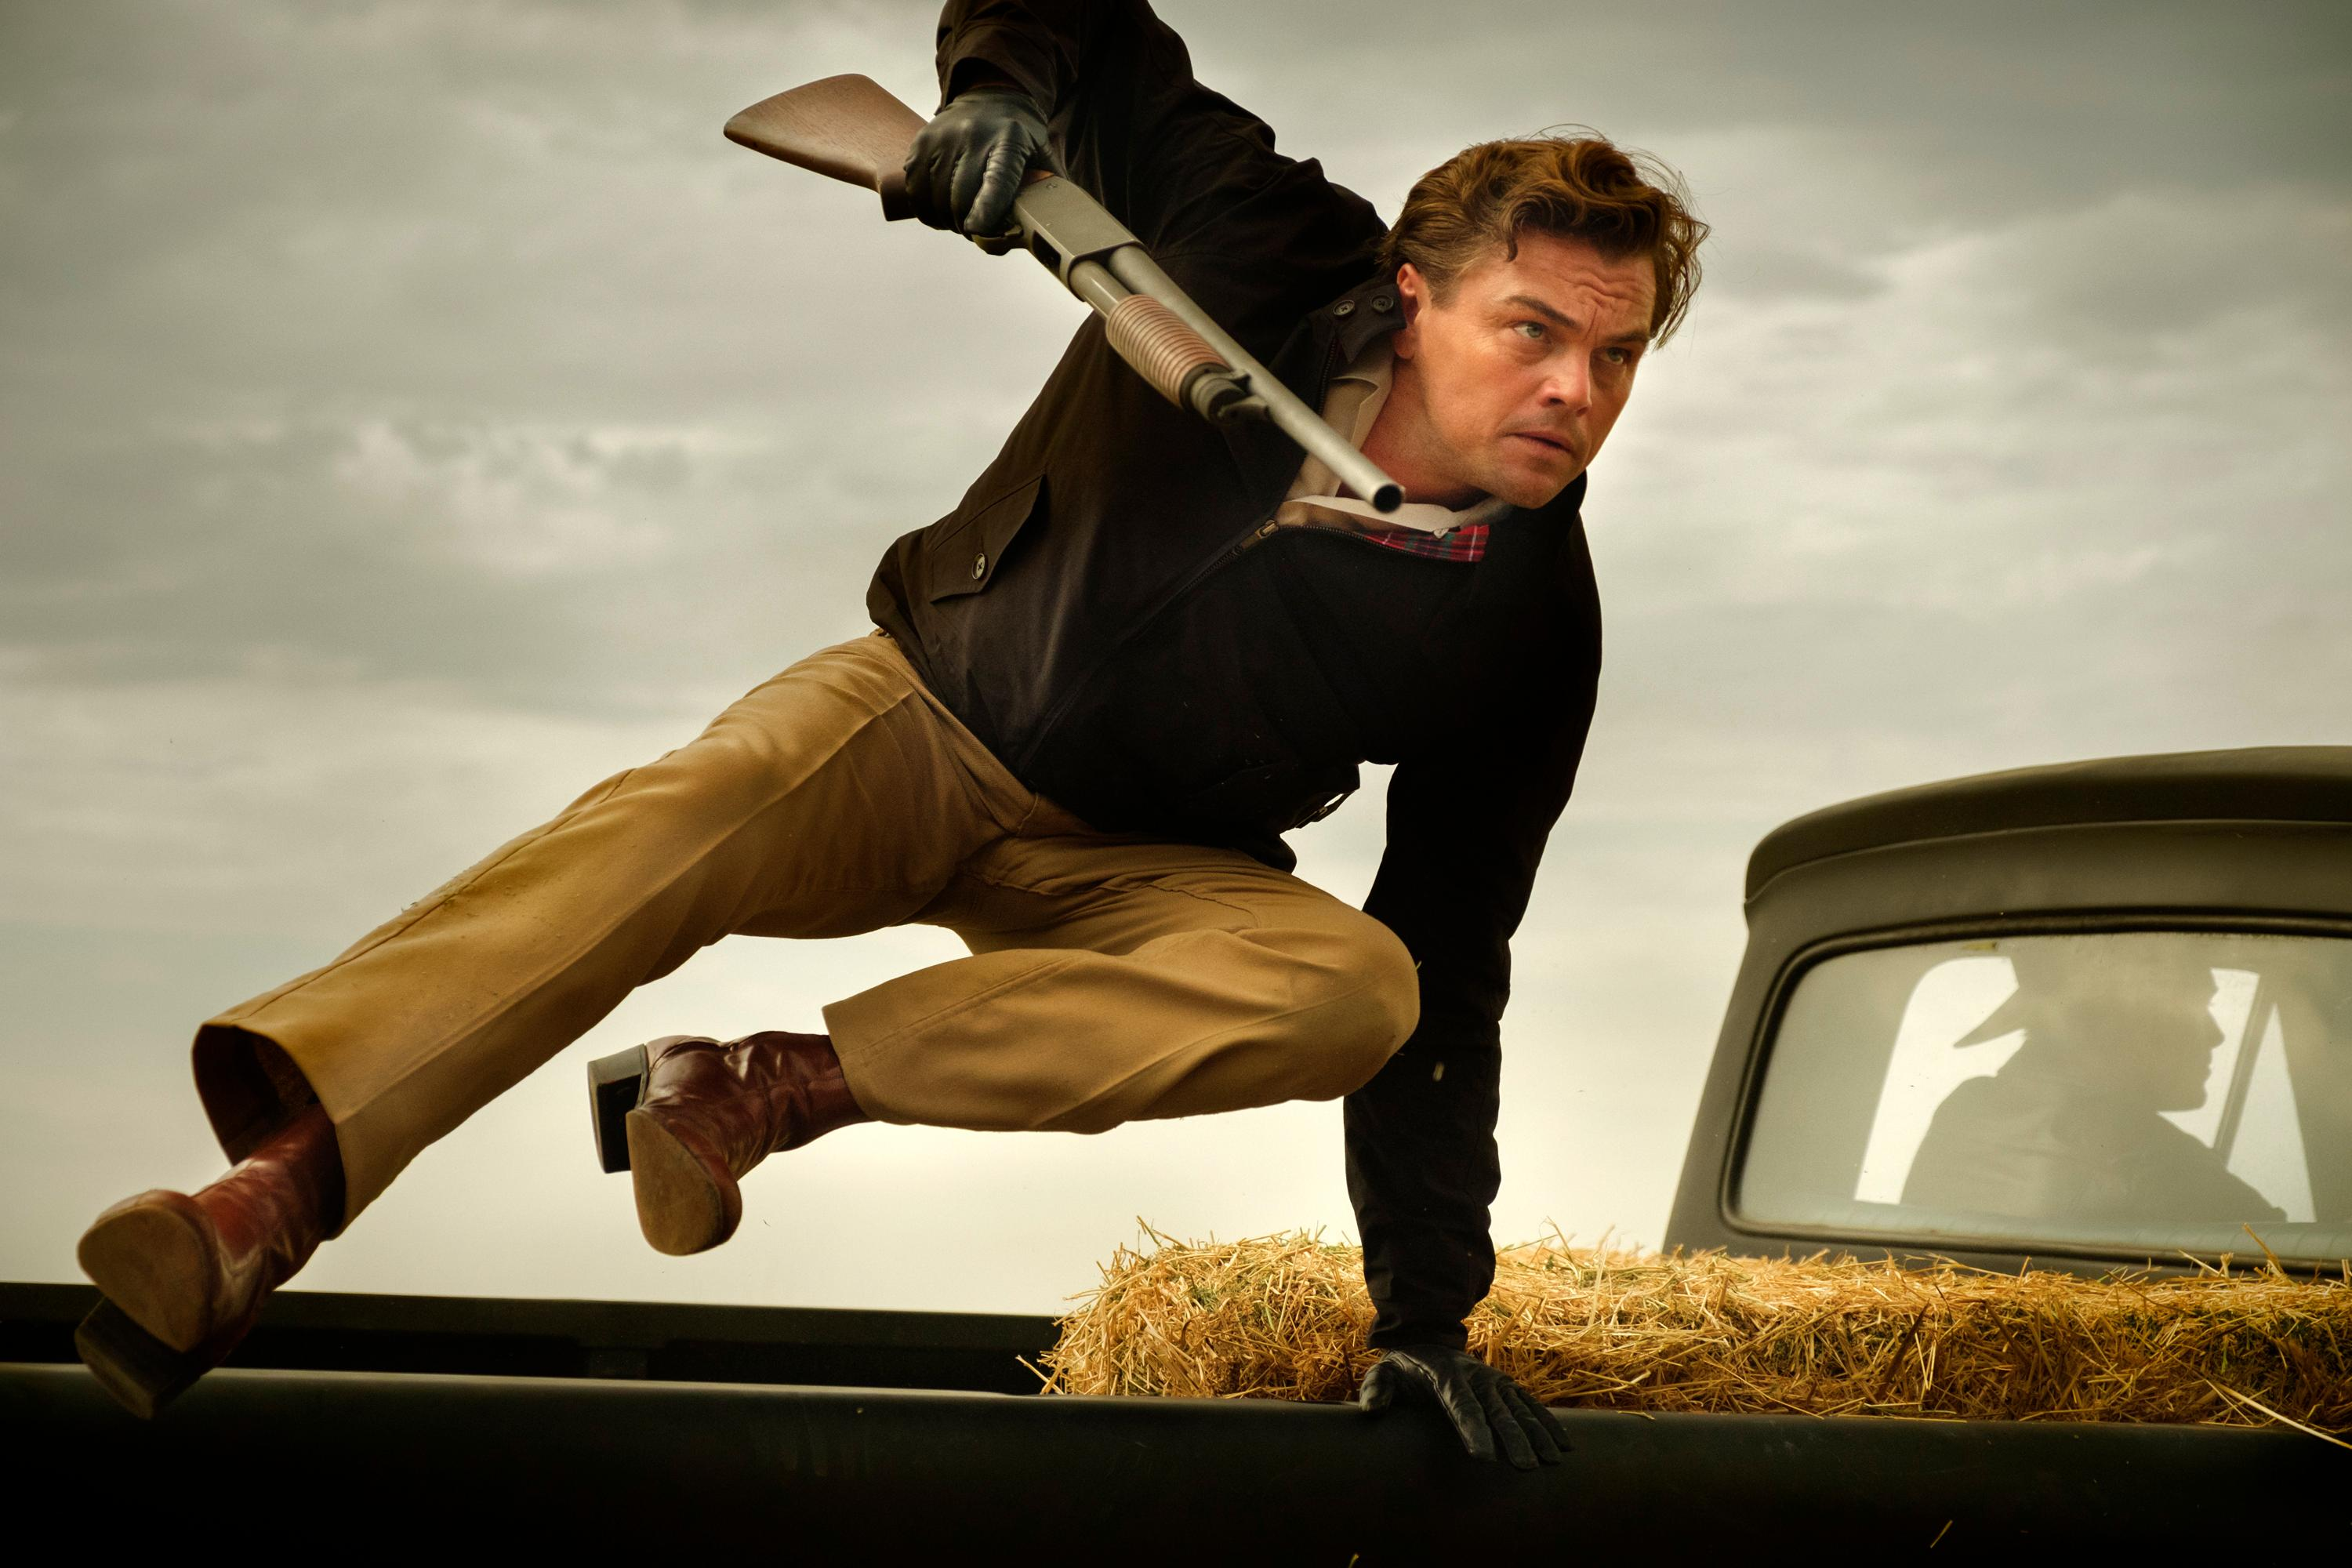 In his appearance on the show F.B.I., Cliff, wielding a rifle, jumps out of the back of a truck.